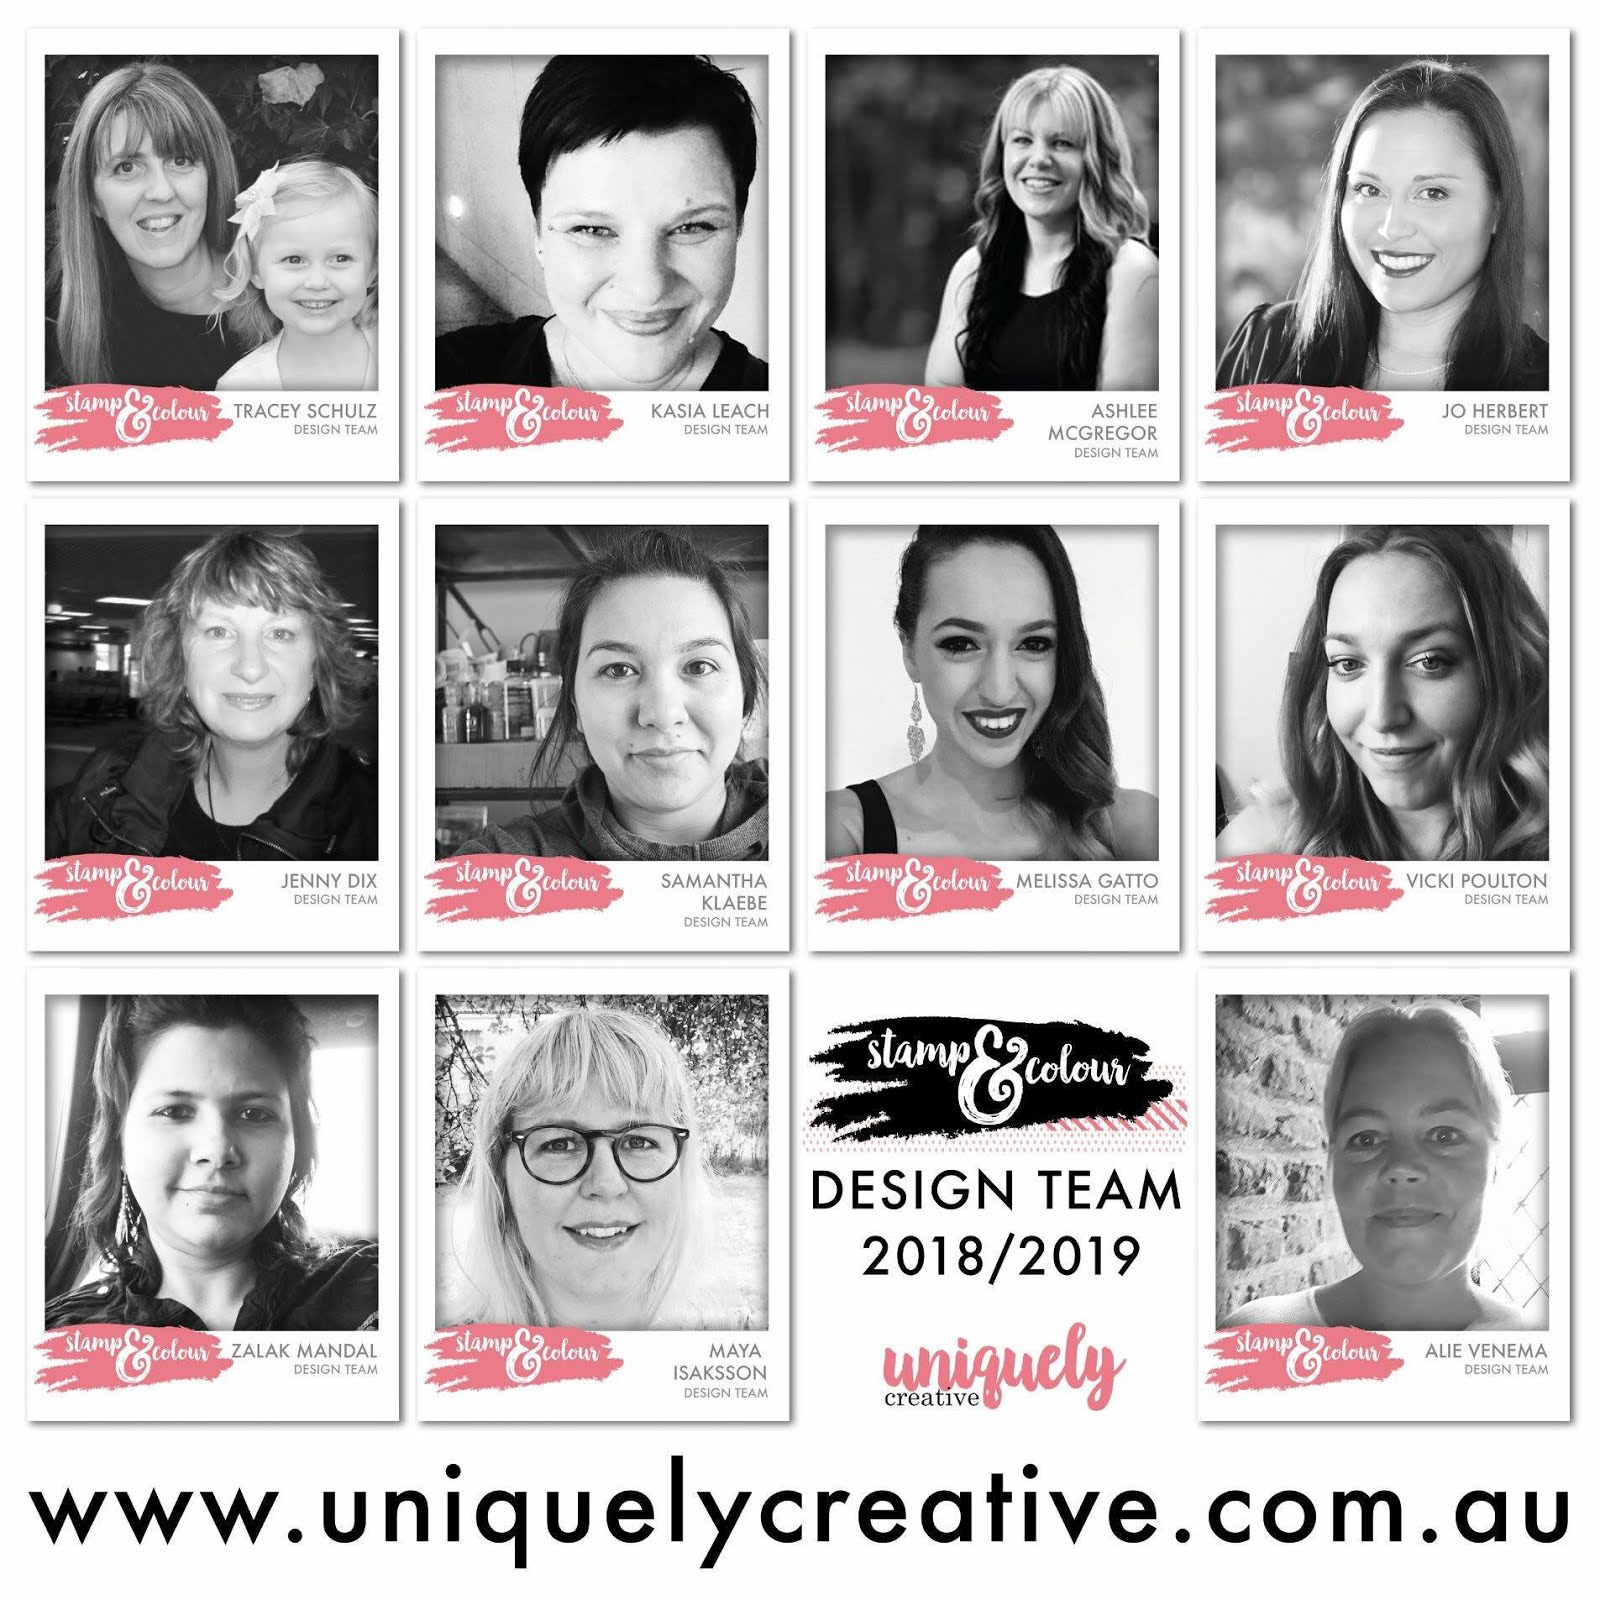 Uniquely Creative Stamp & Colour Design Team